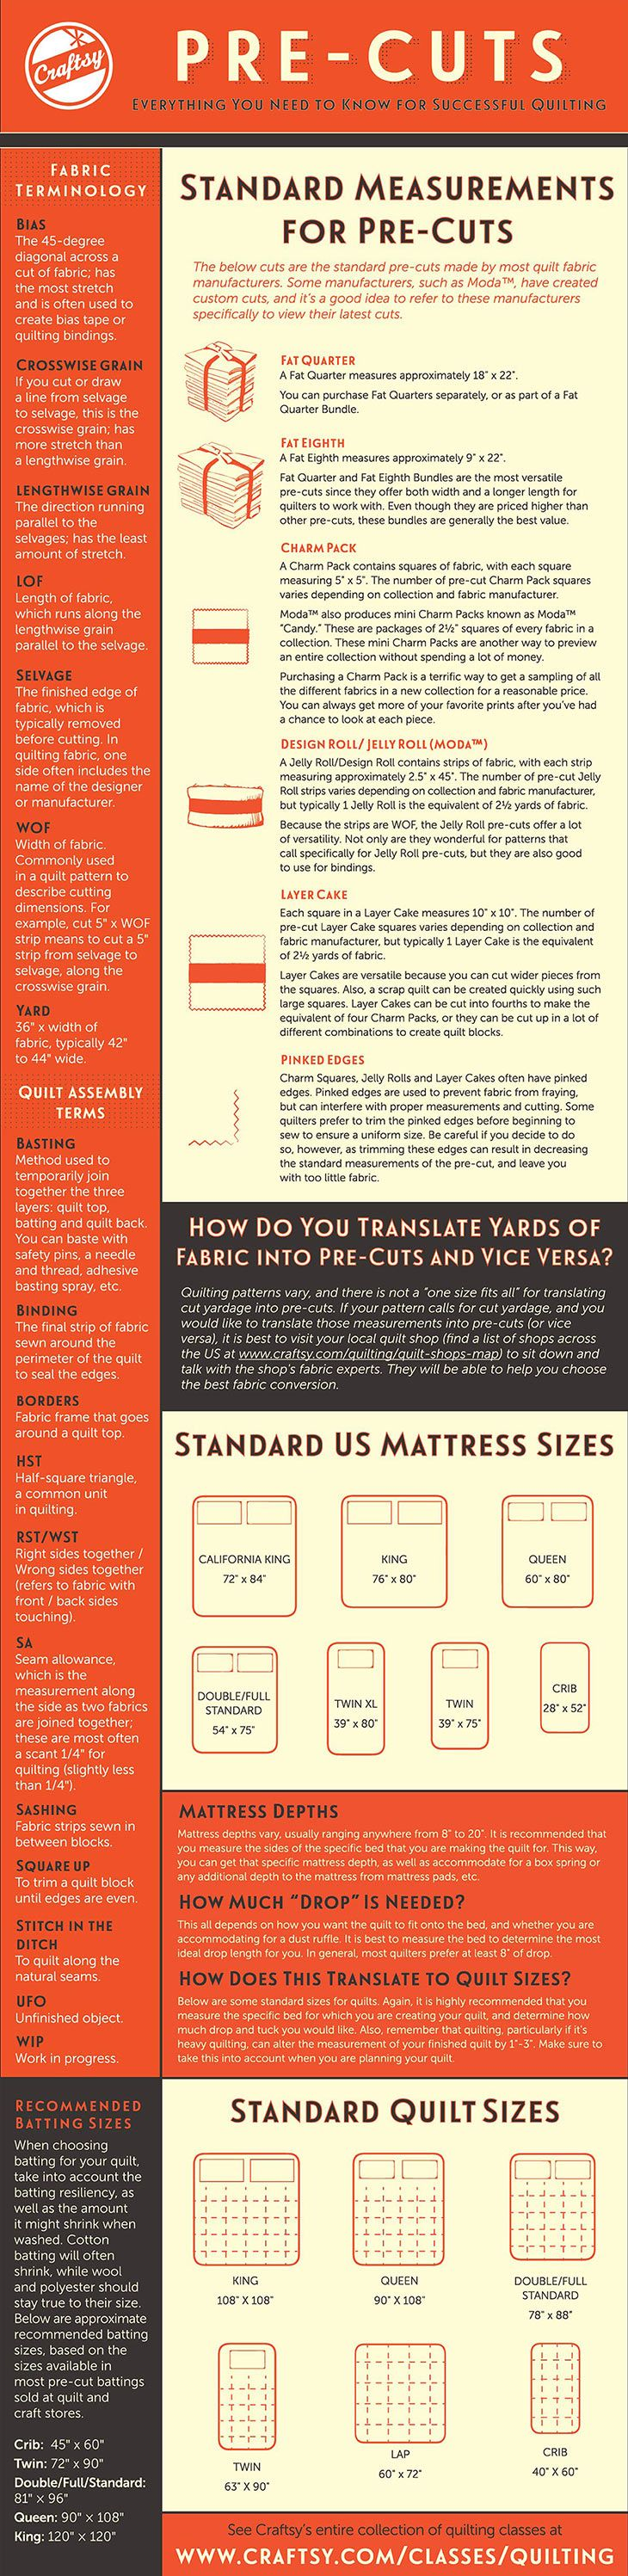 Pre-Cuts: Everything You Need To Know For Successful Quilting